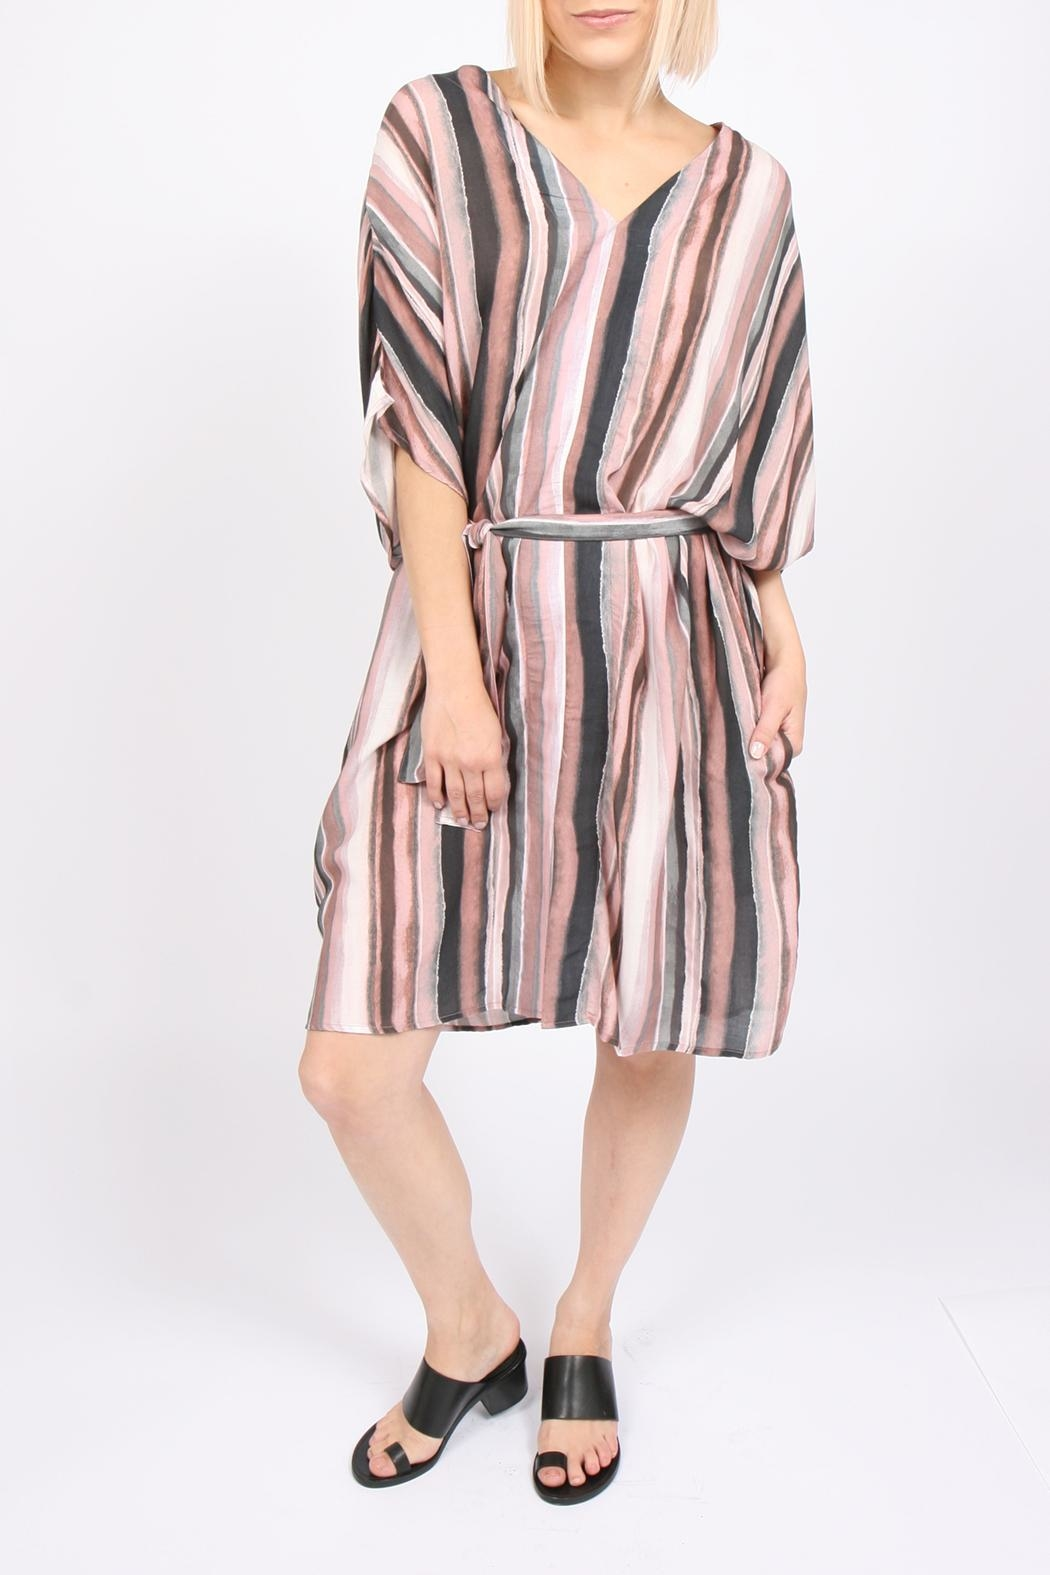 Tina + Jo Sadona Stripe Kaftan-Dress - Back Cropped Image